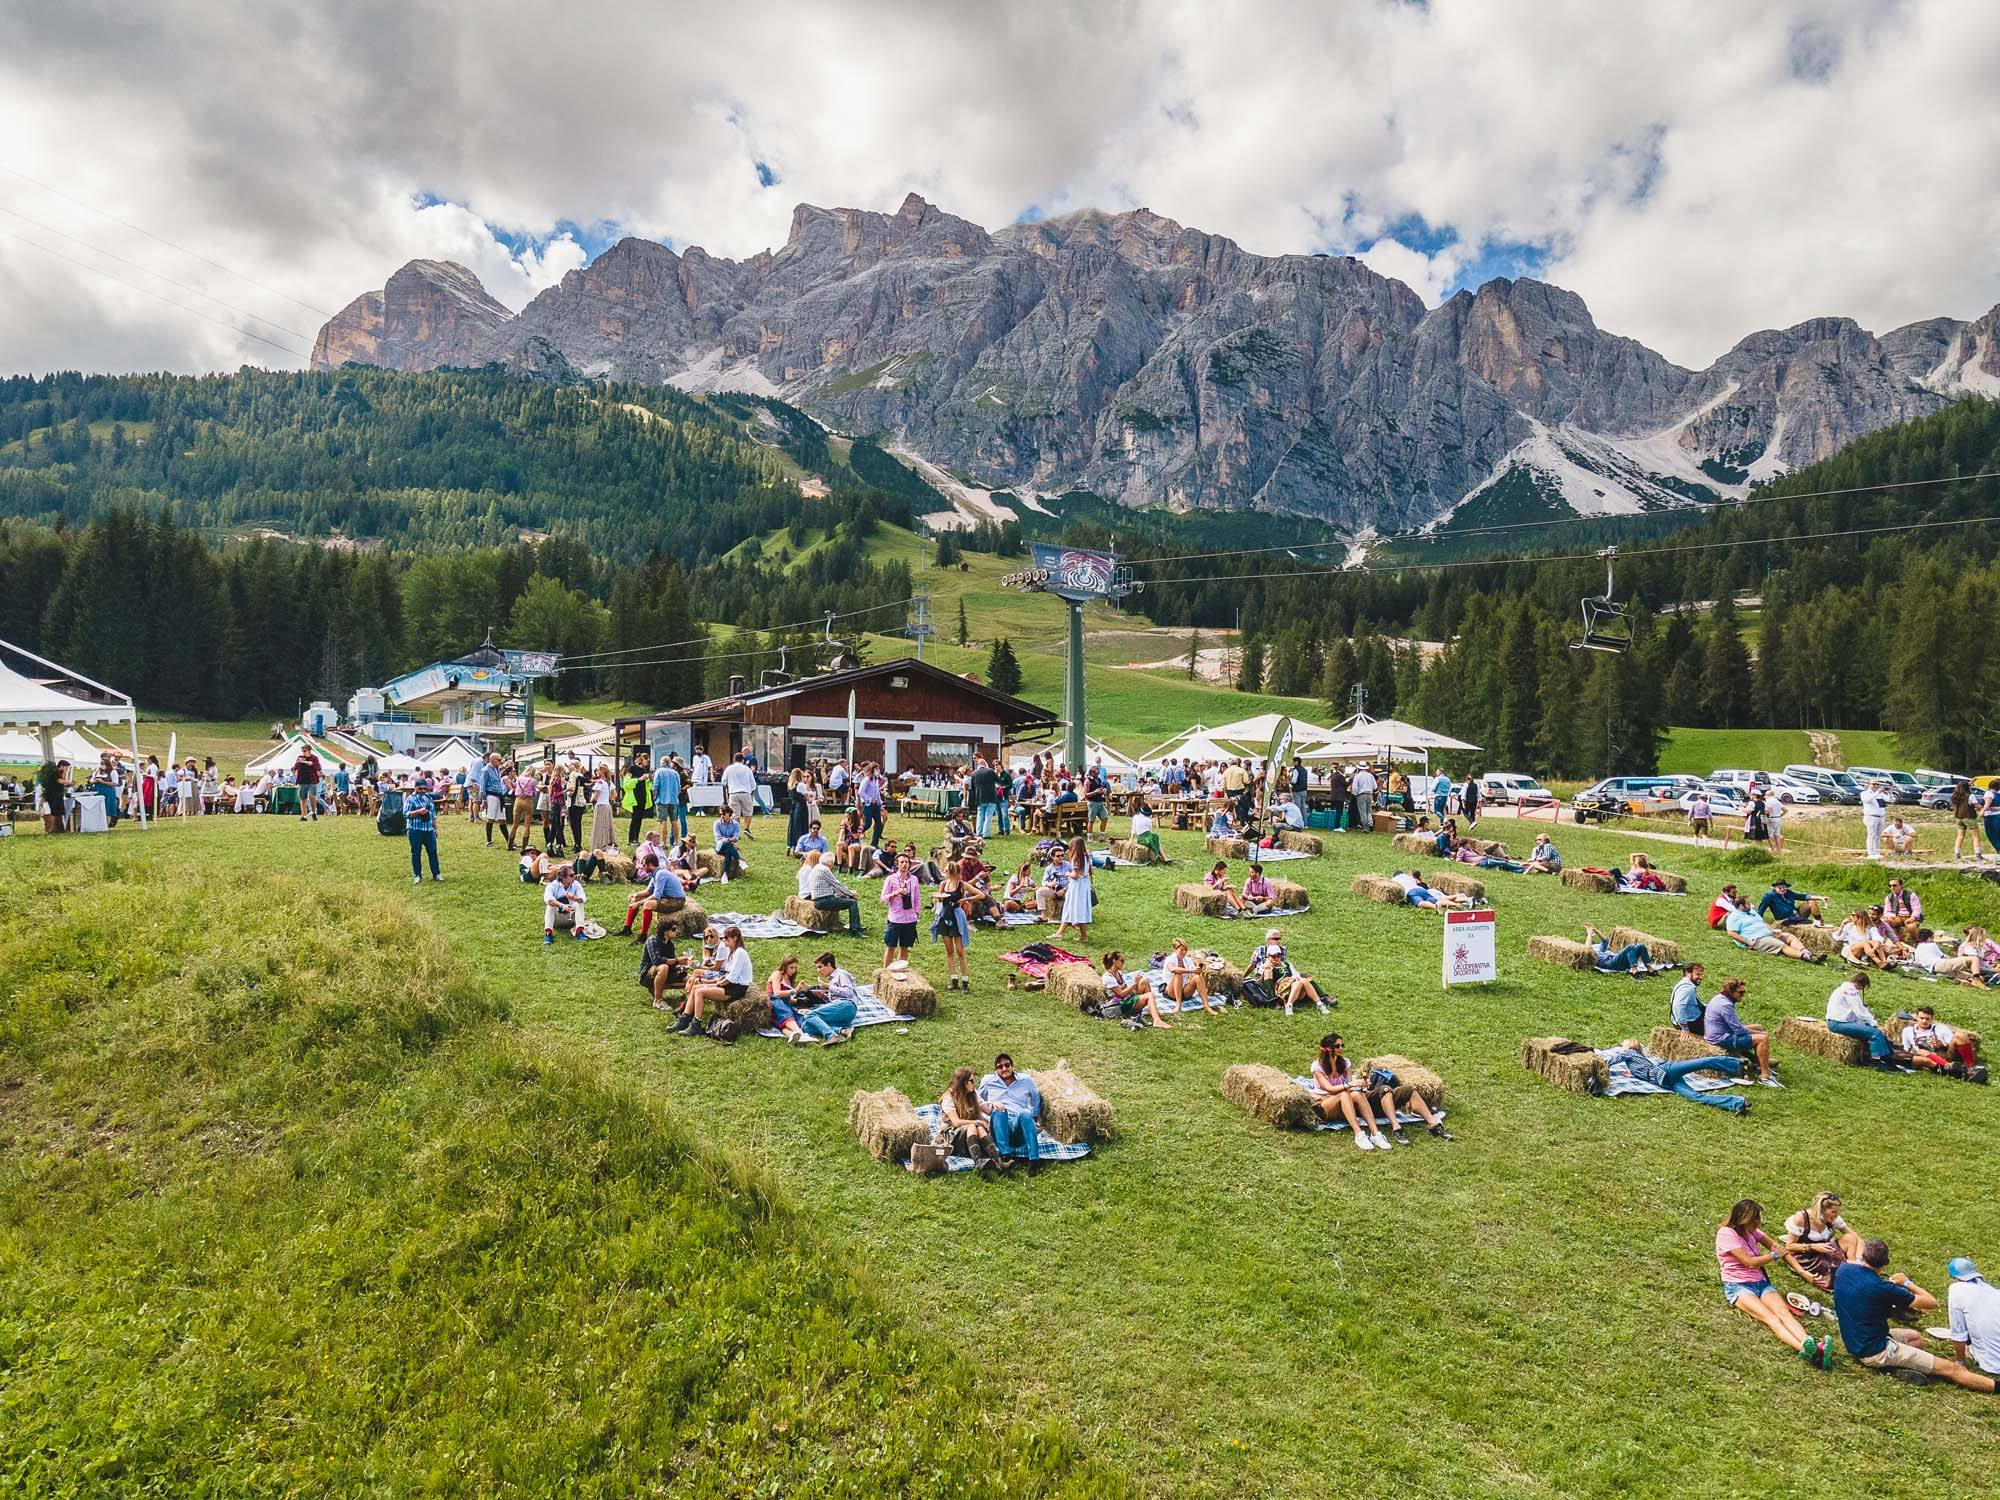 cortina summer party 2020 positivo tampone 500 persone